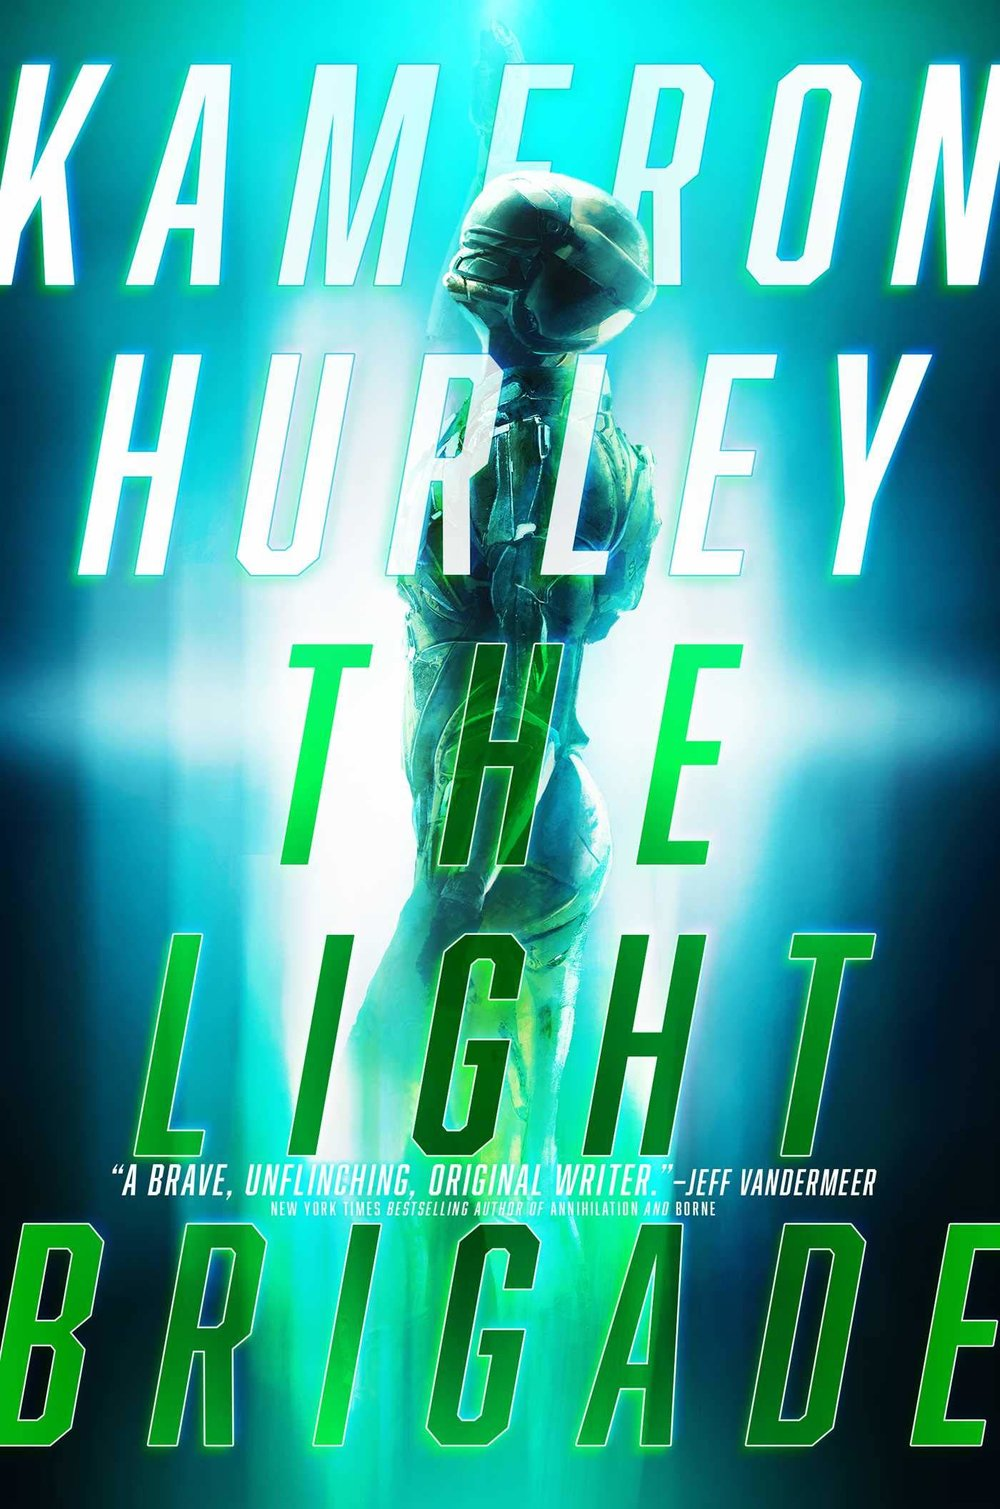 The Light Brigade_Kameron Hurley.jpg